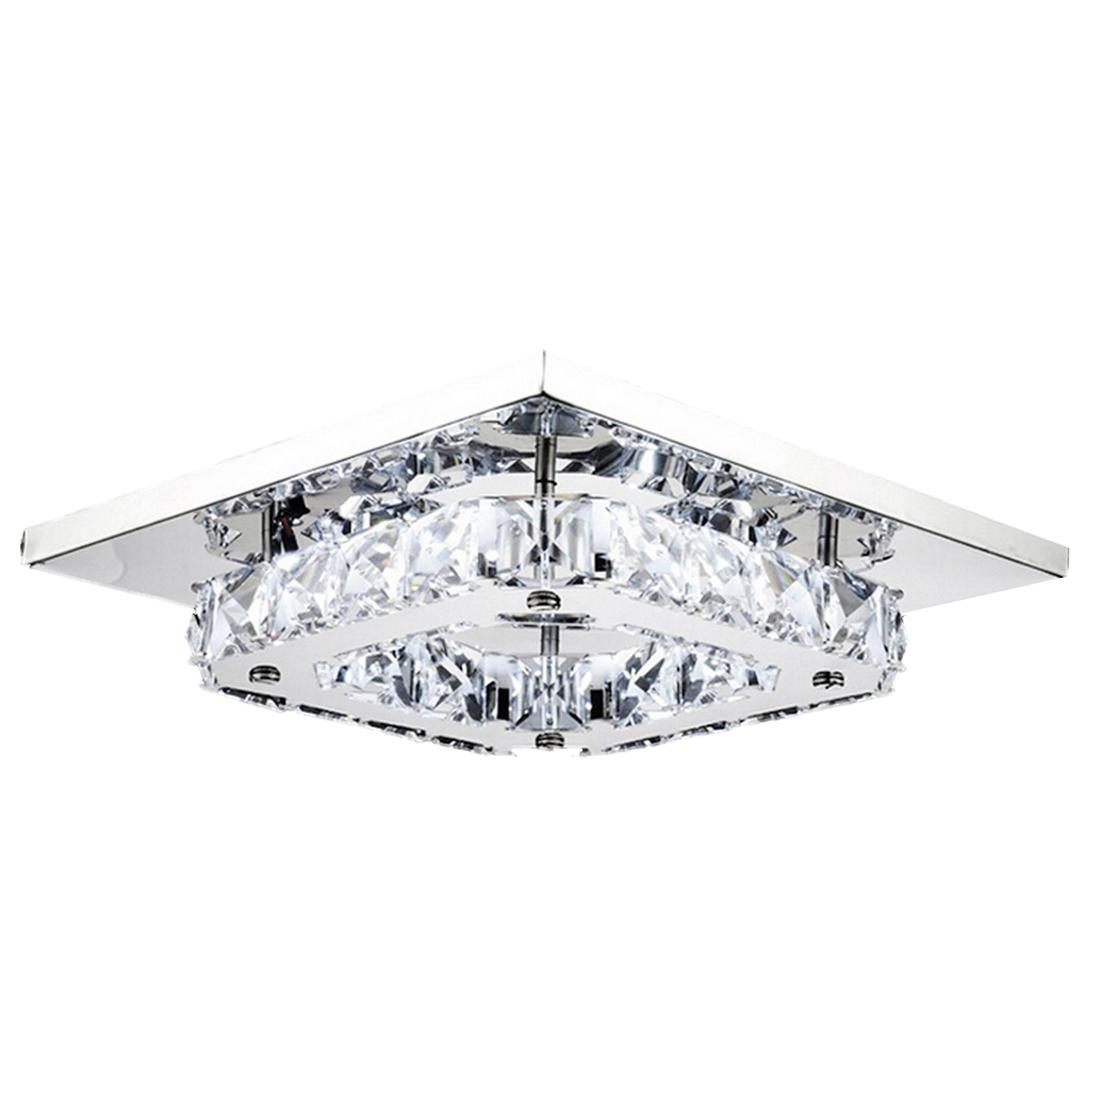 8 Led Crystal Flush Mount Modern Transpa Stainless Steel Ceiling Light Lamp With 61 01 Piece On